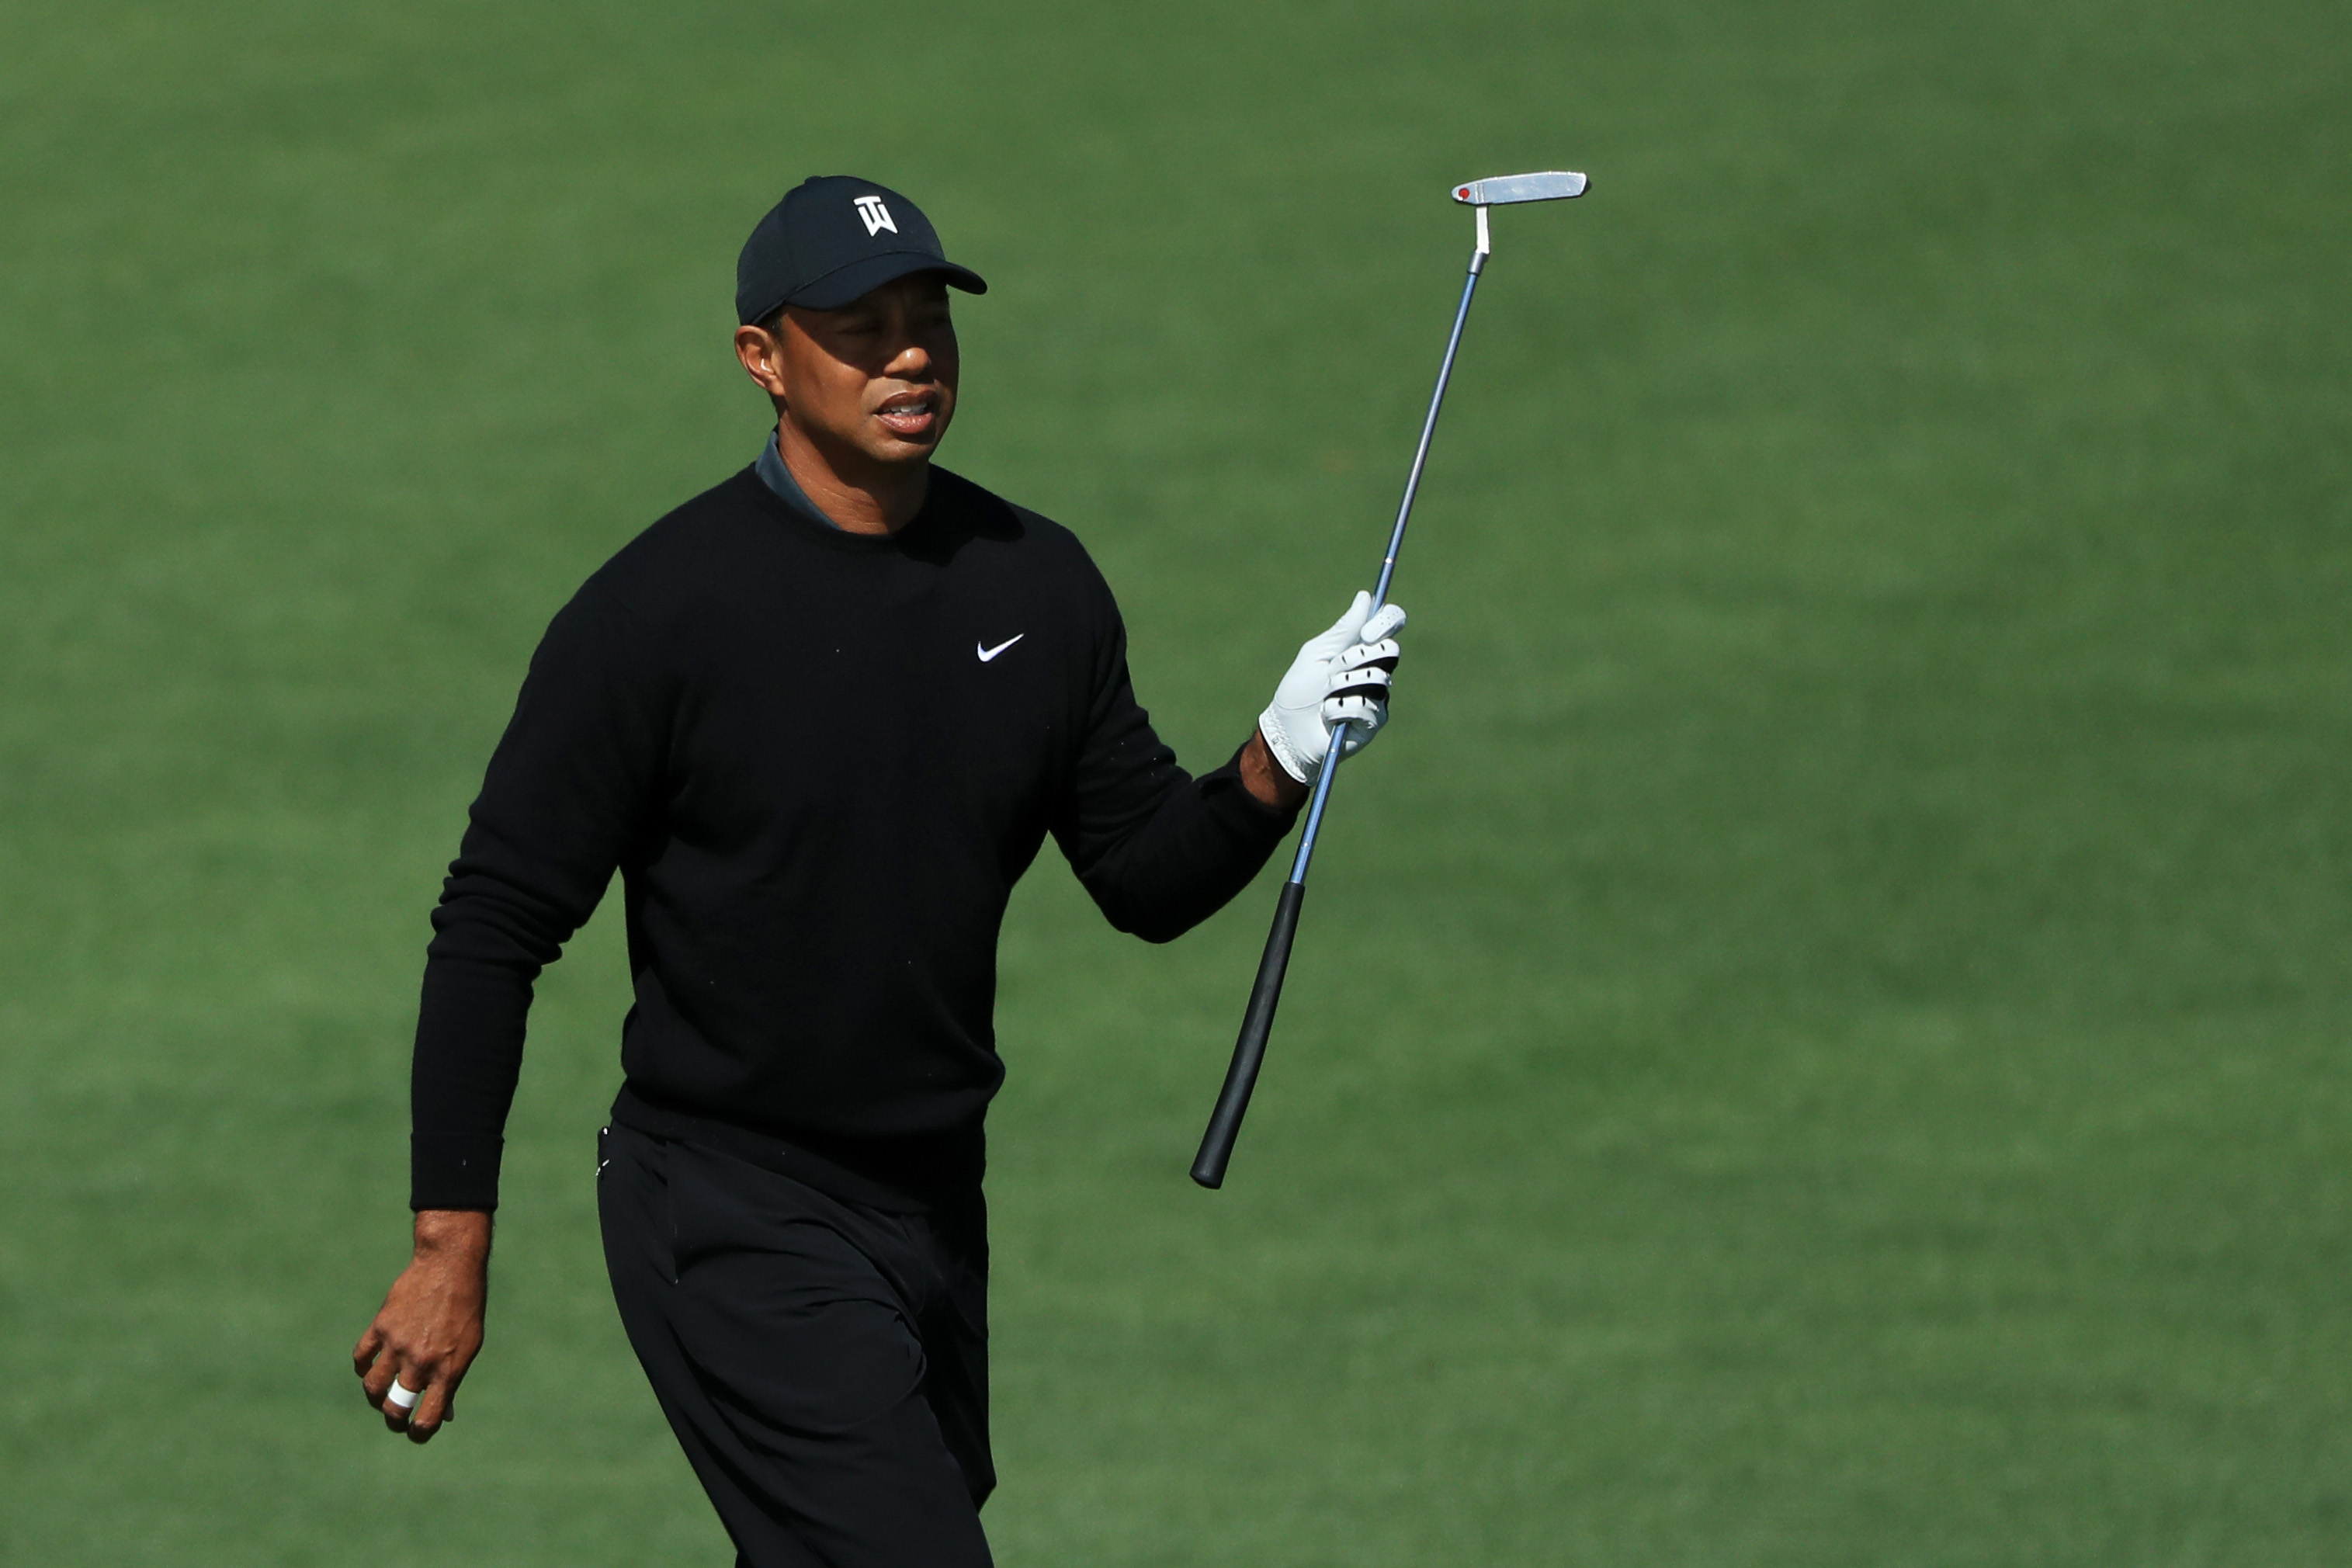 Tiger Woods Masters Return May Save The Golf Industry Fortune